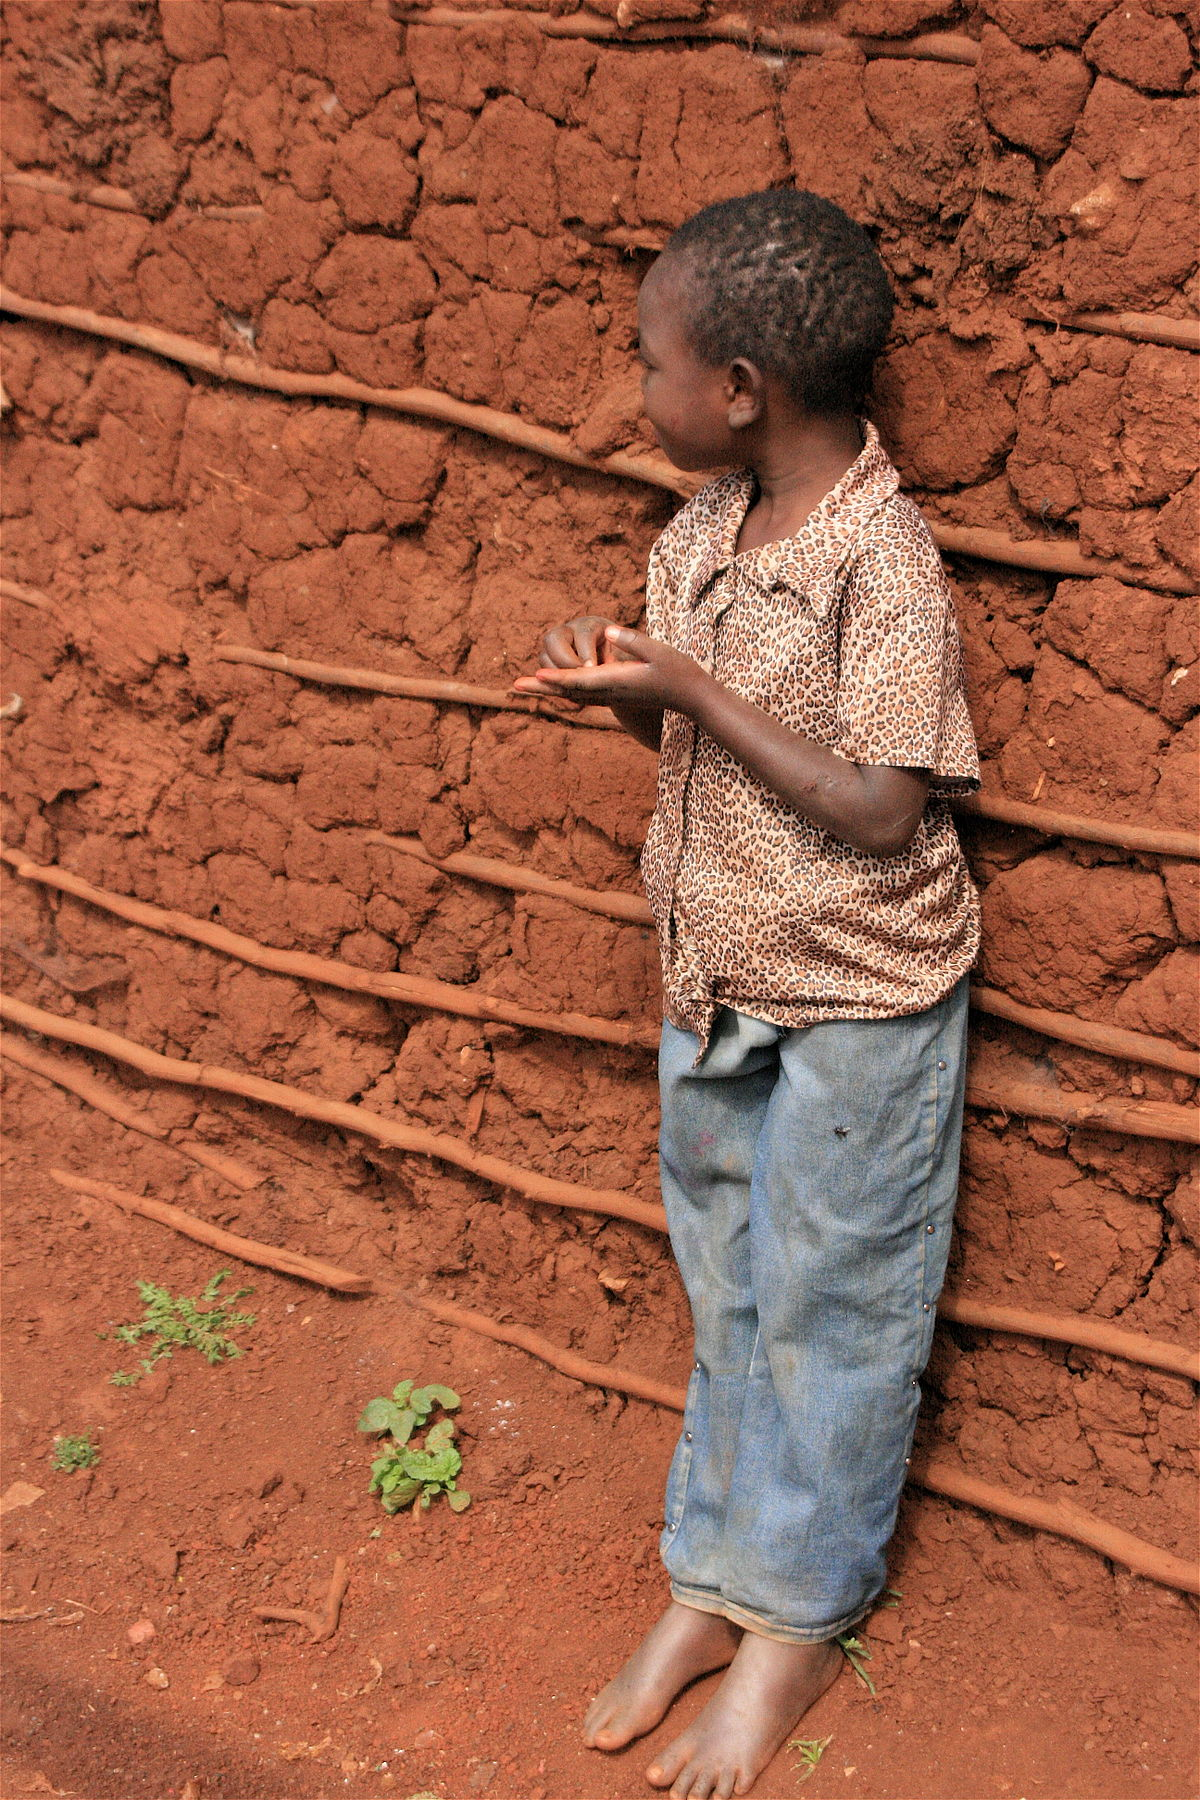 Barefoot child in Kibera.jpg